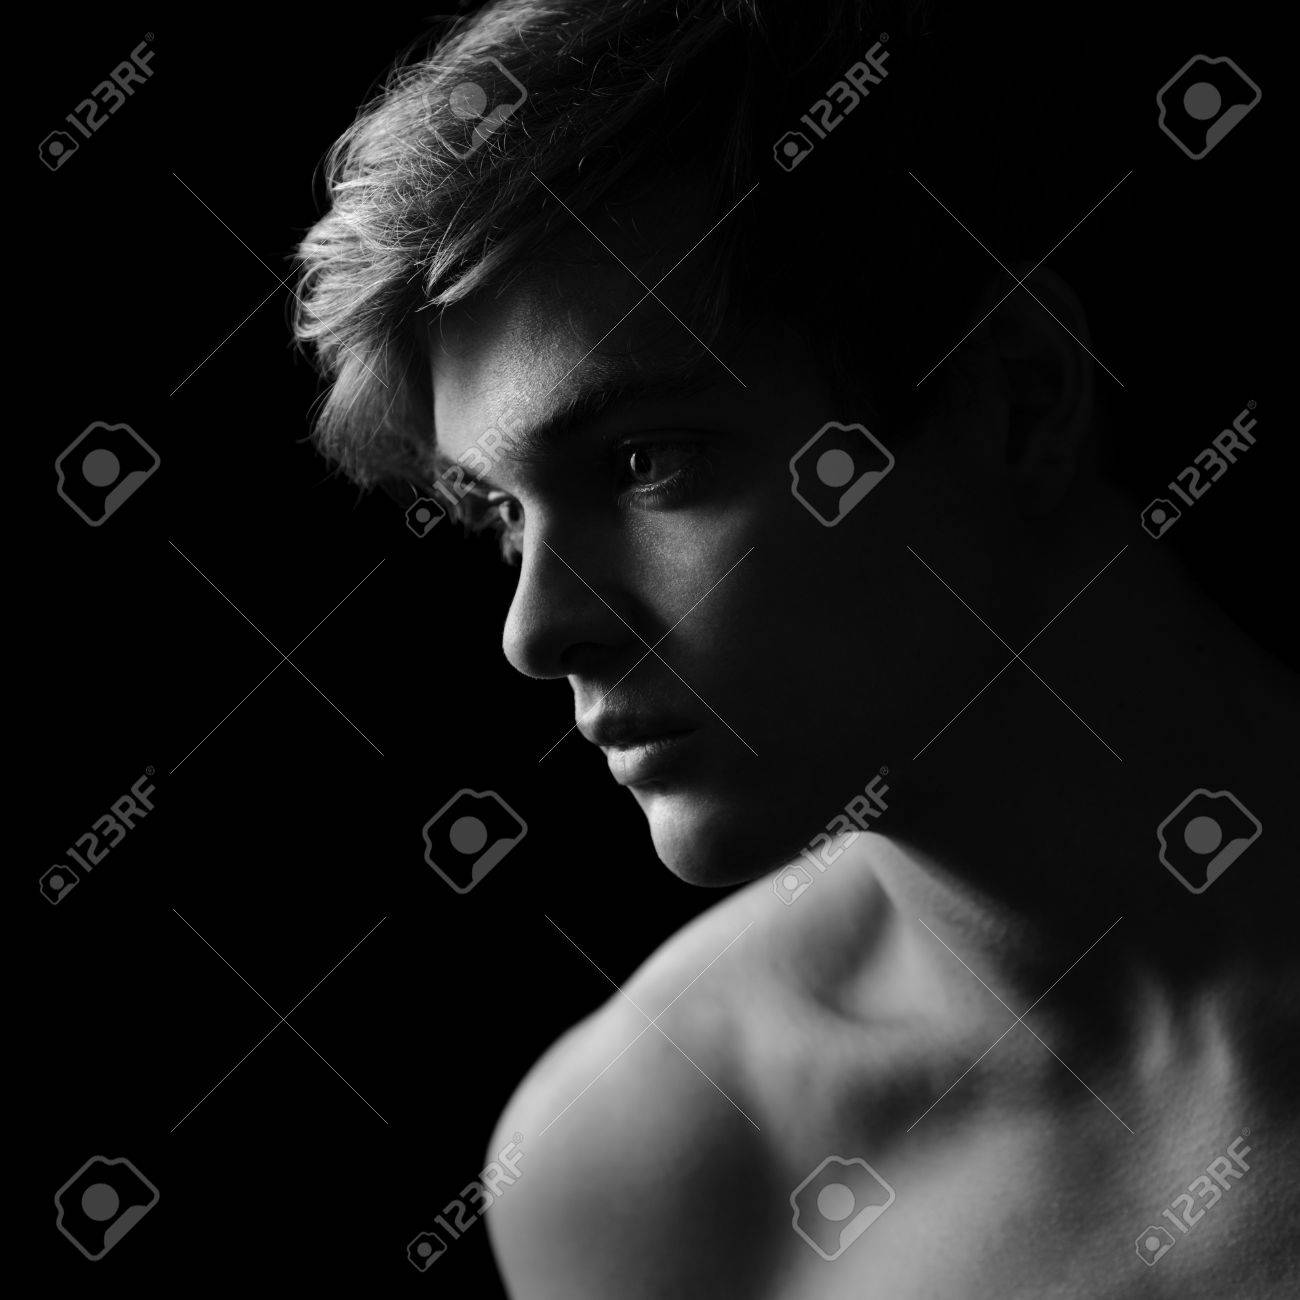 Beautiful Man Silhouette In Black White Stock Photo